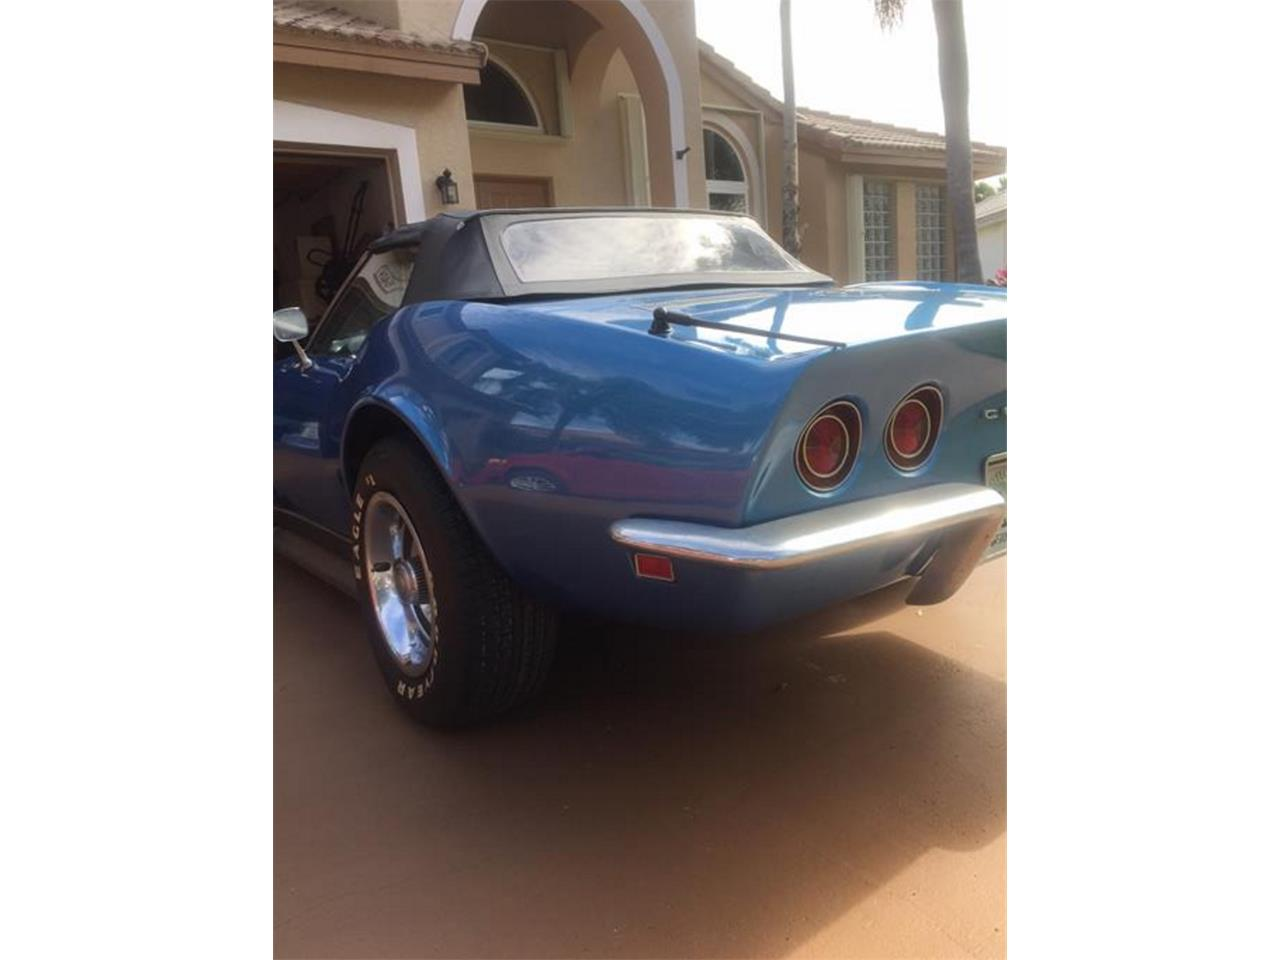 Large Picture of 1968 Chevrolet Corvette located in Coral Springs Florida - $30,000.00 Offered by a Private Seller - H0VT